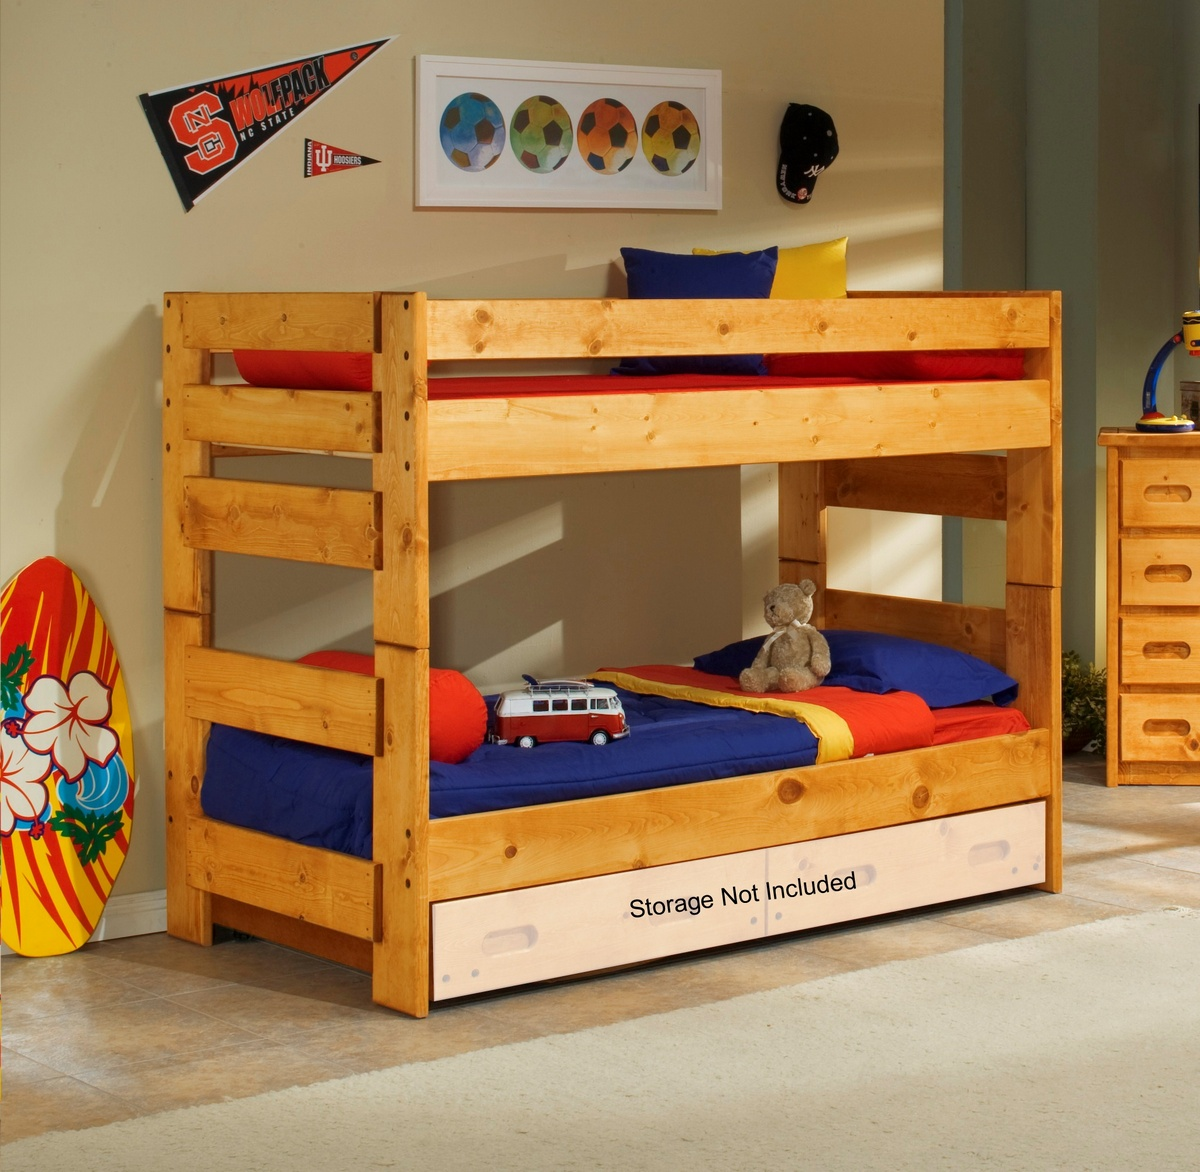 Chelsea Home Furniture Bunk Bed Twin Cinnamon Photo